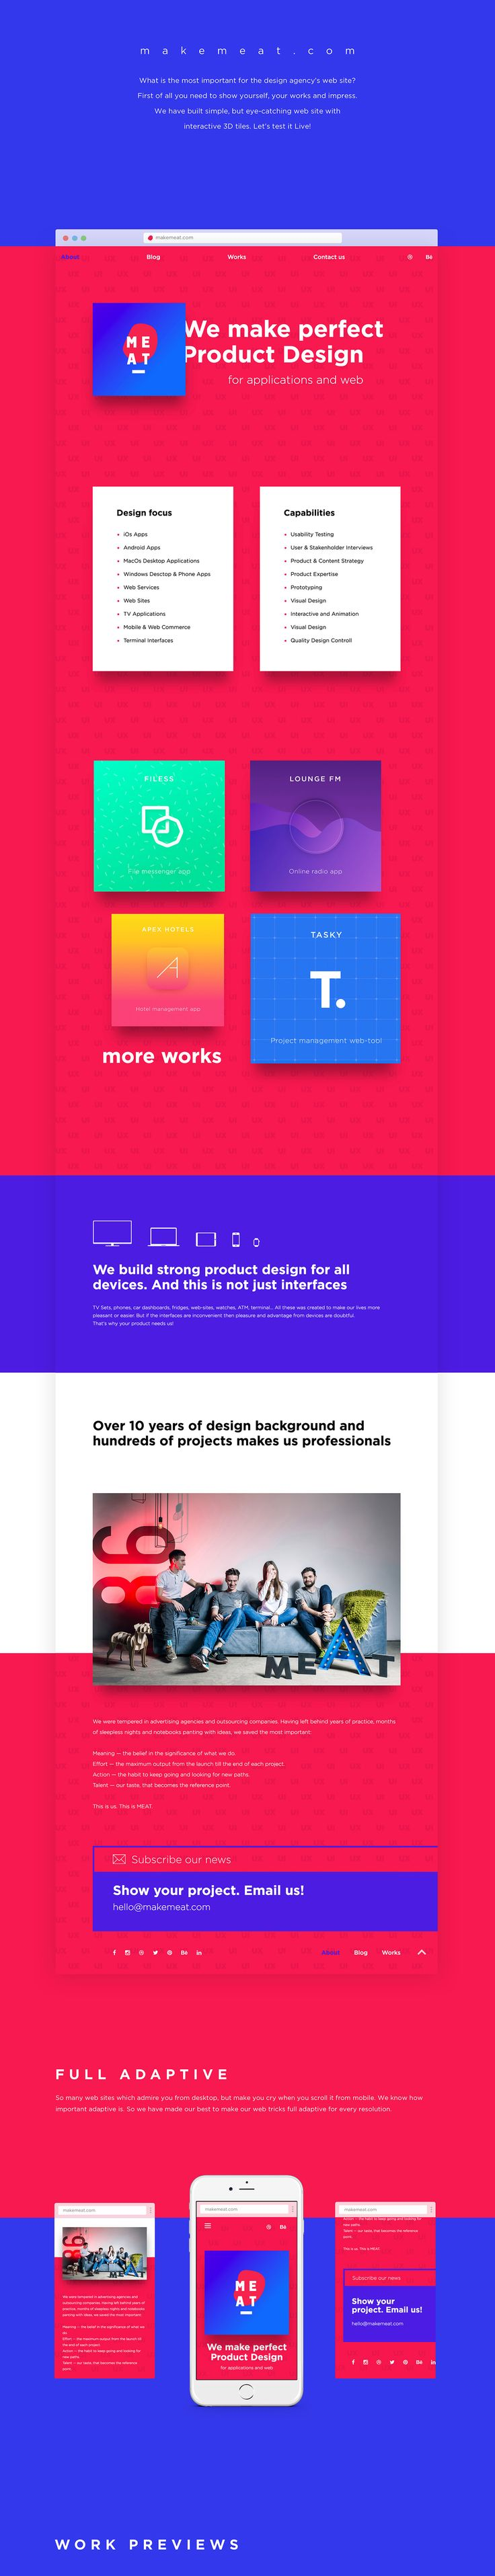 What is the most important for the design agency's website?First of all, you need to show yourself, your works and impress.We have built simple, but an eye-catching website with interactive 3D tiles. Let's test it Live!